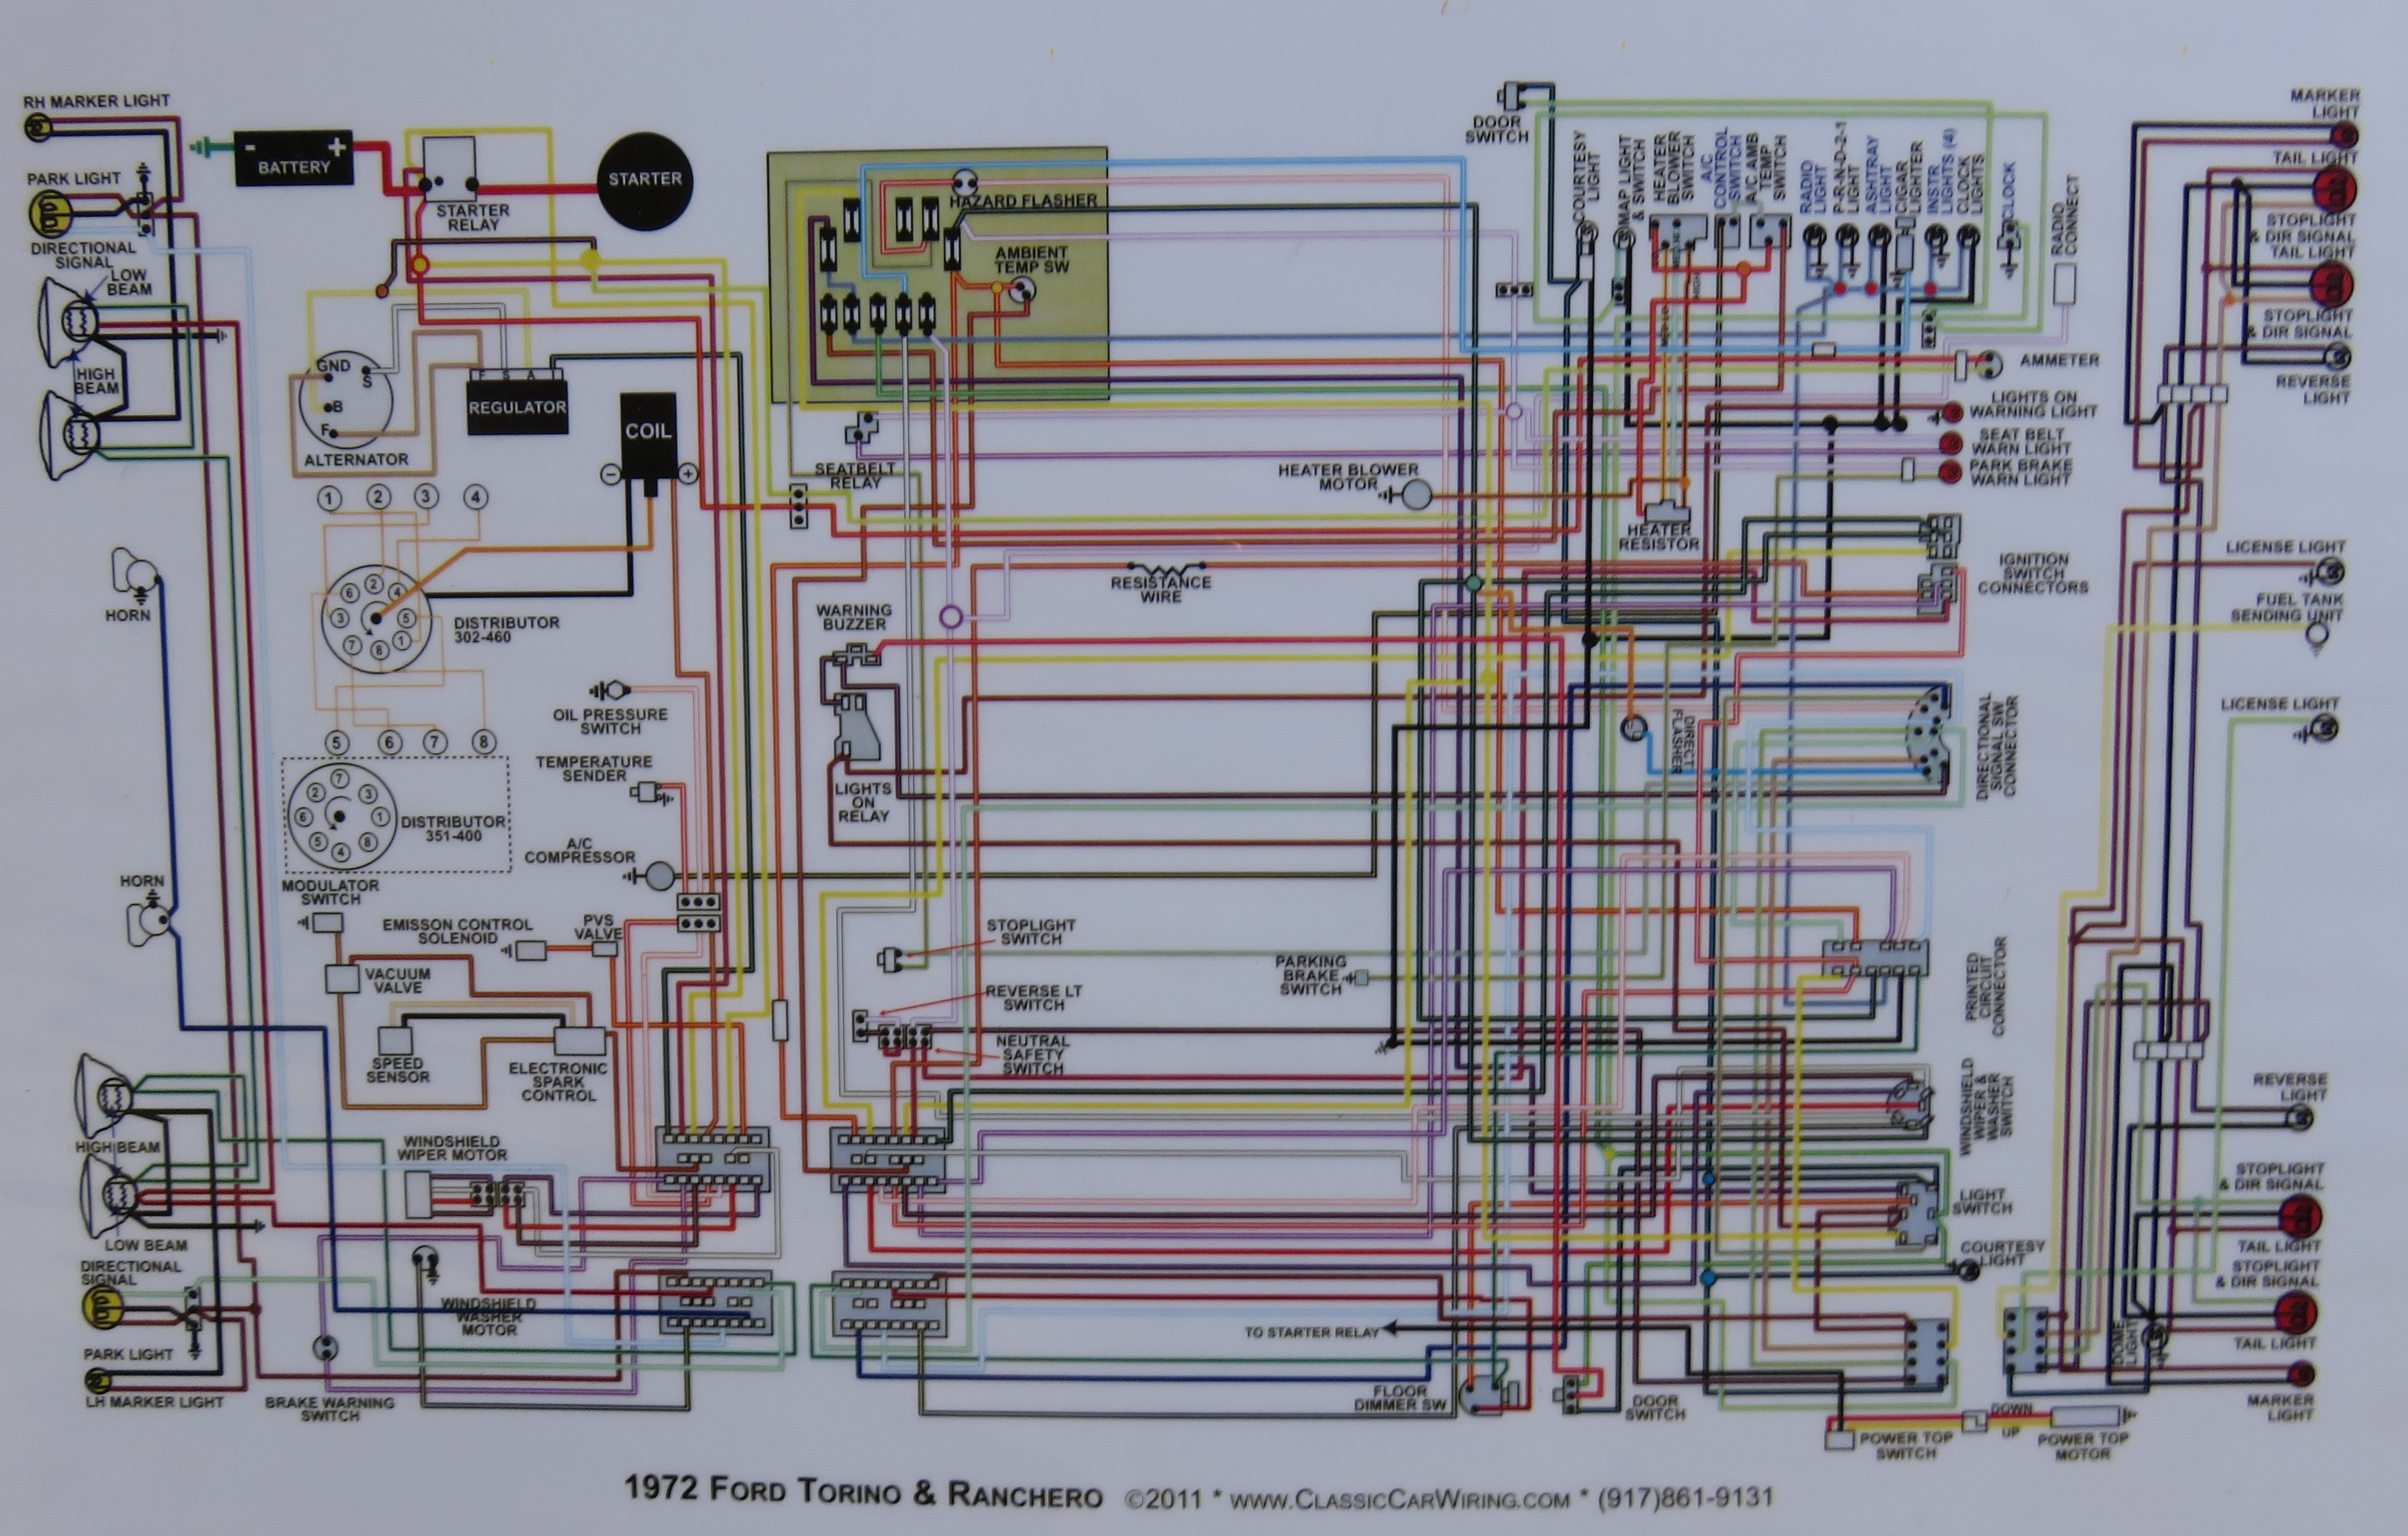 hight resolution of au ford falcon wiring diagram free download wiring library rh 83 skriptoase de 63 ford falcon wiring diagrams 66 ford falcon wiring diagrams